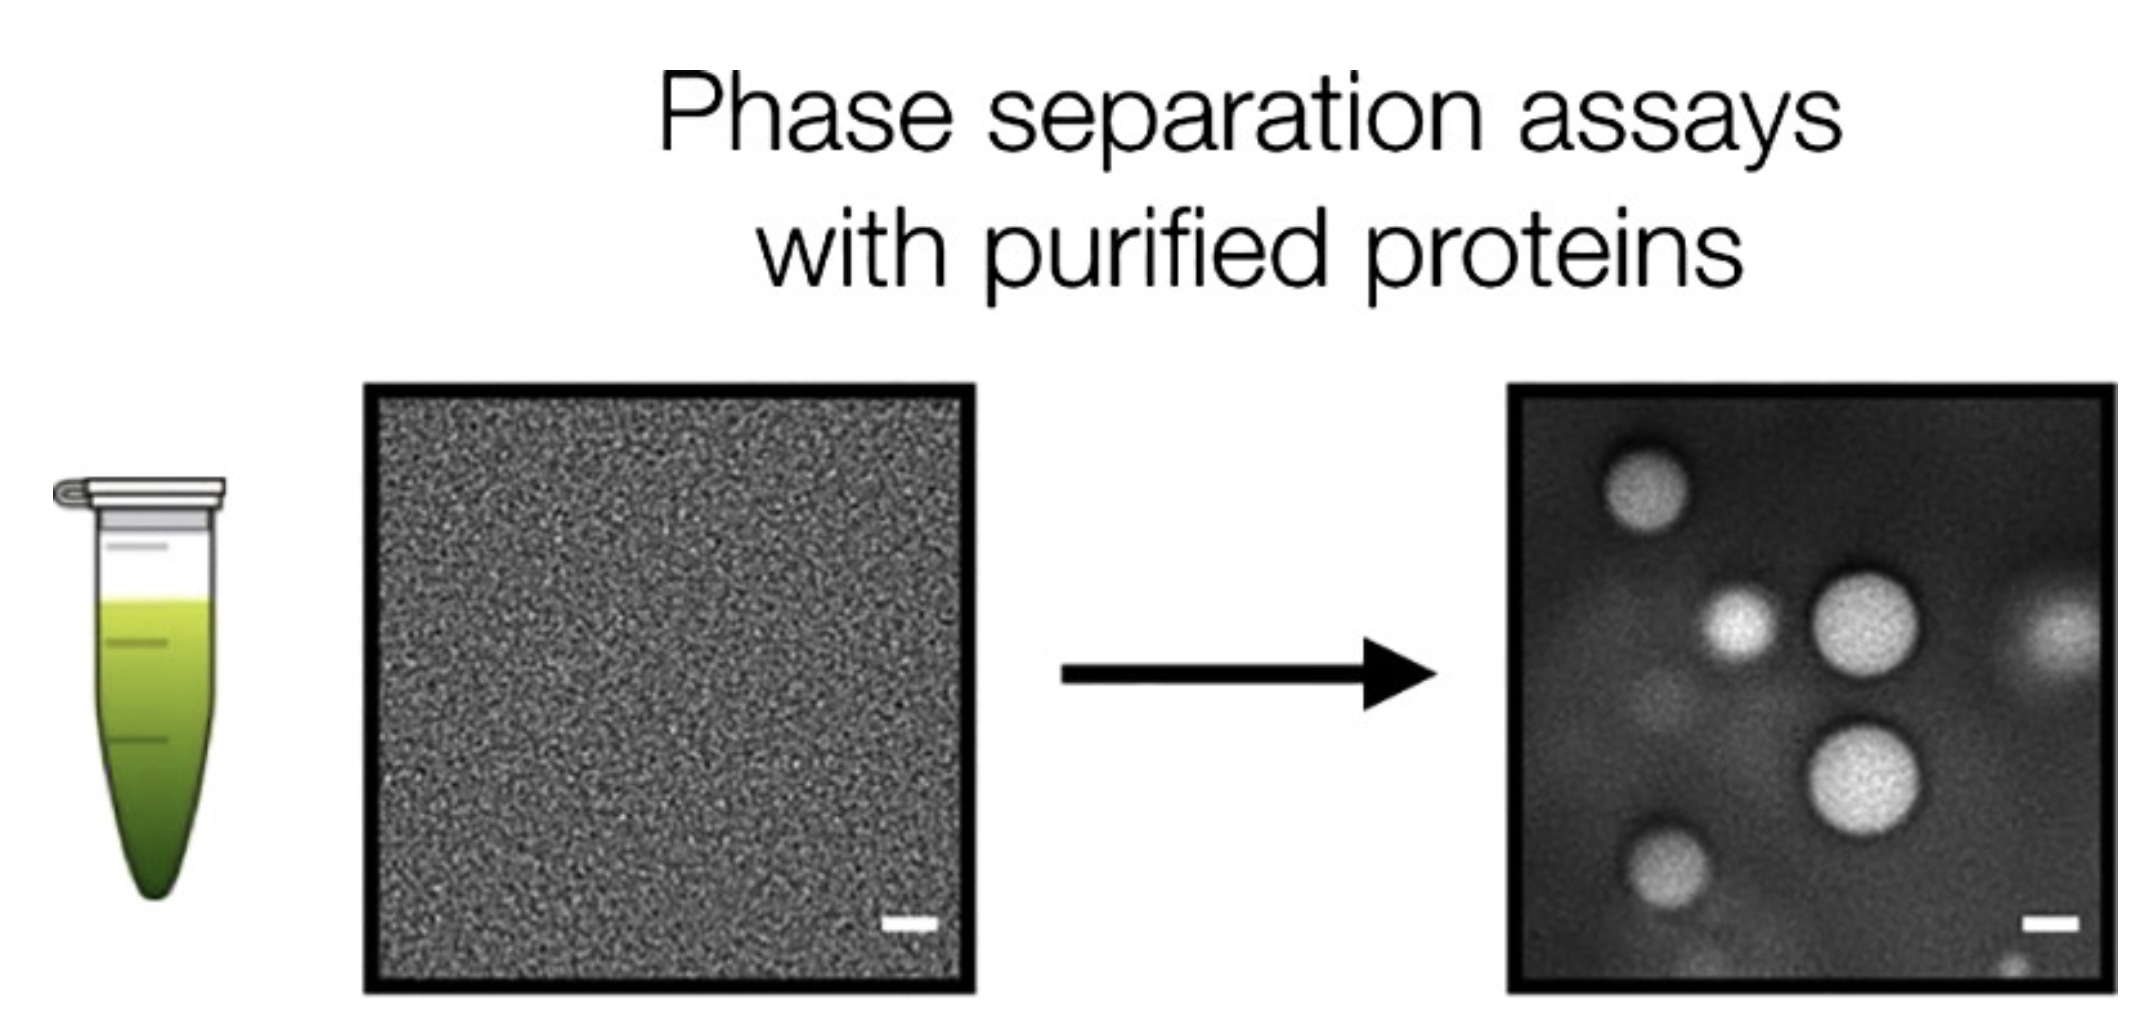 Hyman Lab Max Planck Institute Of Molecular Cell Biology Genetics Cellular Resources Check Out Our New Users Guide For Phase Separation Assays With Purified Proteins